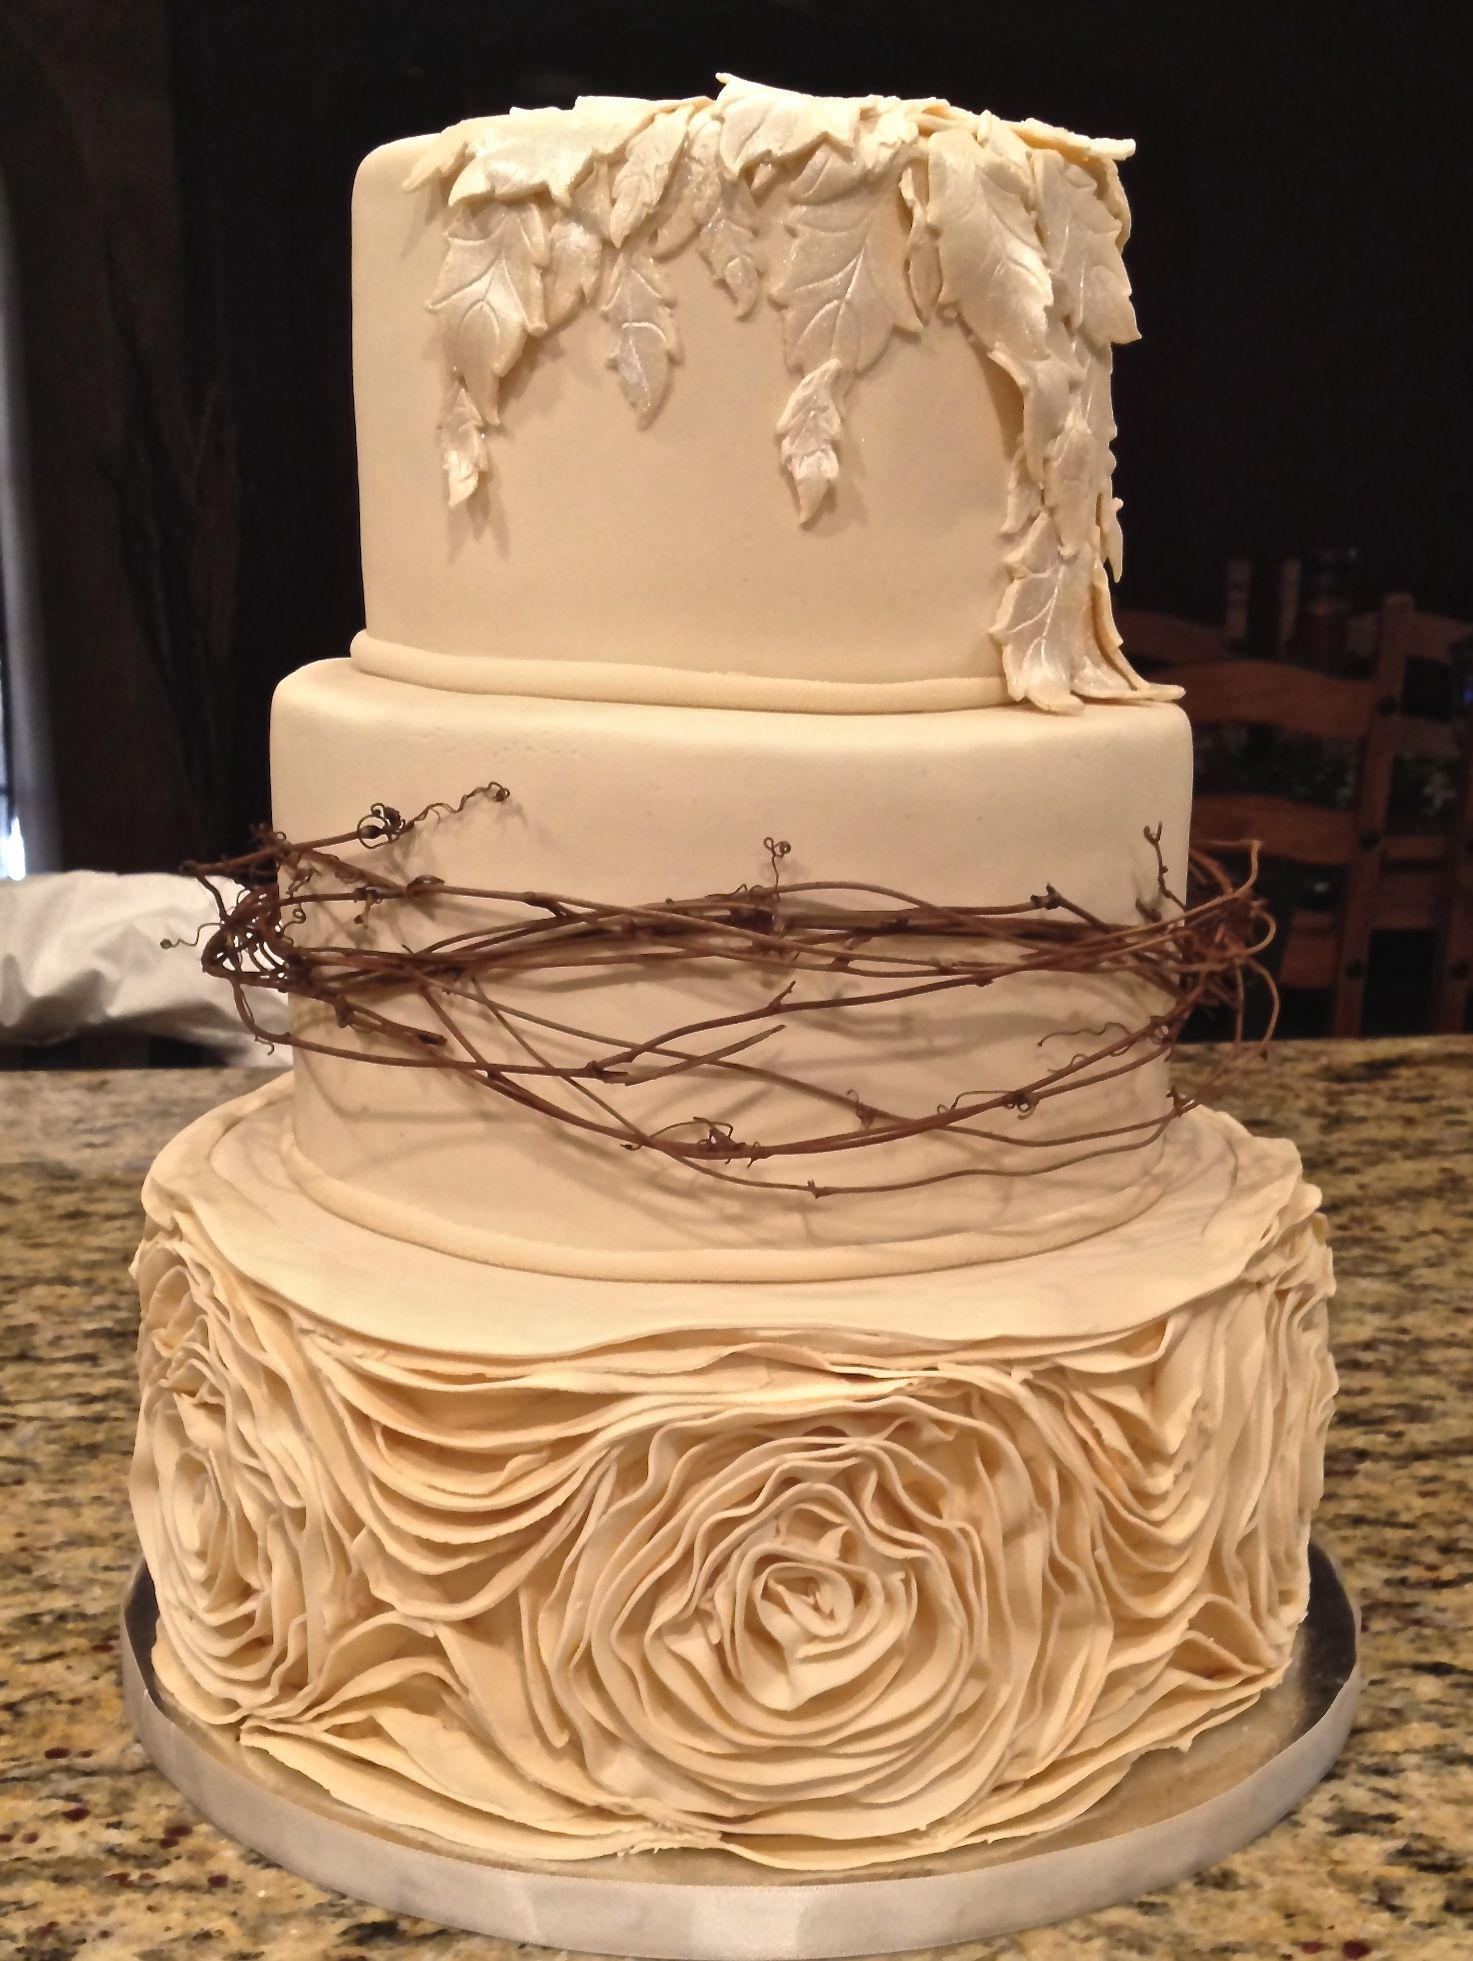 choosing the rustic wedding cakes can be one of the good things for ...